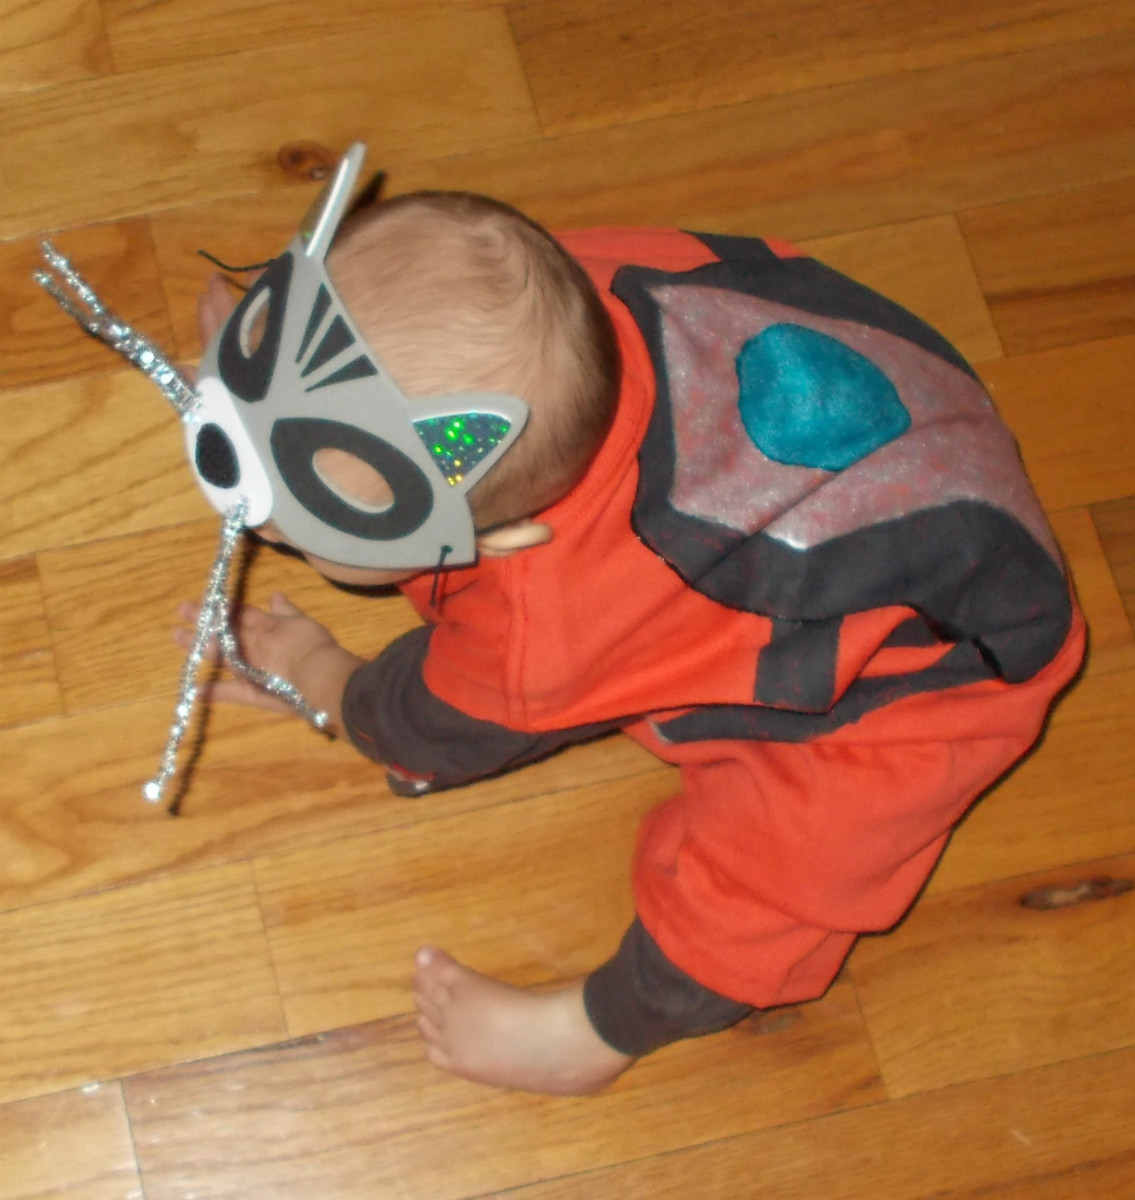 Families, Groups Can Call Themselves the Guardians of the Galaxy With DIY Costumes